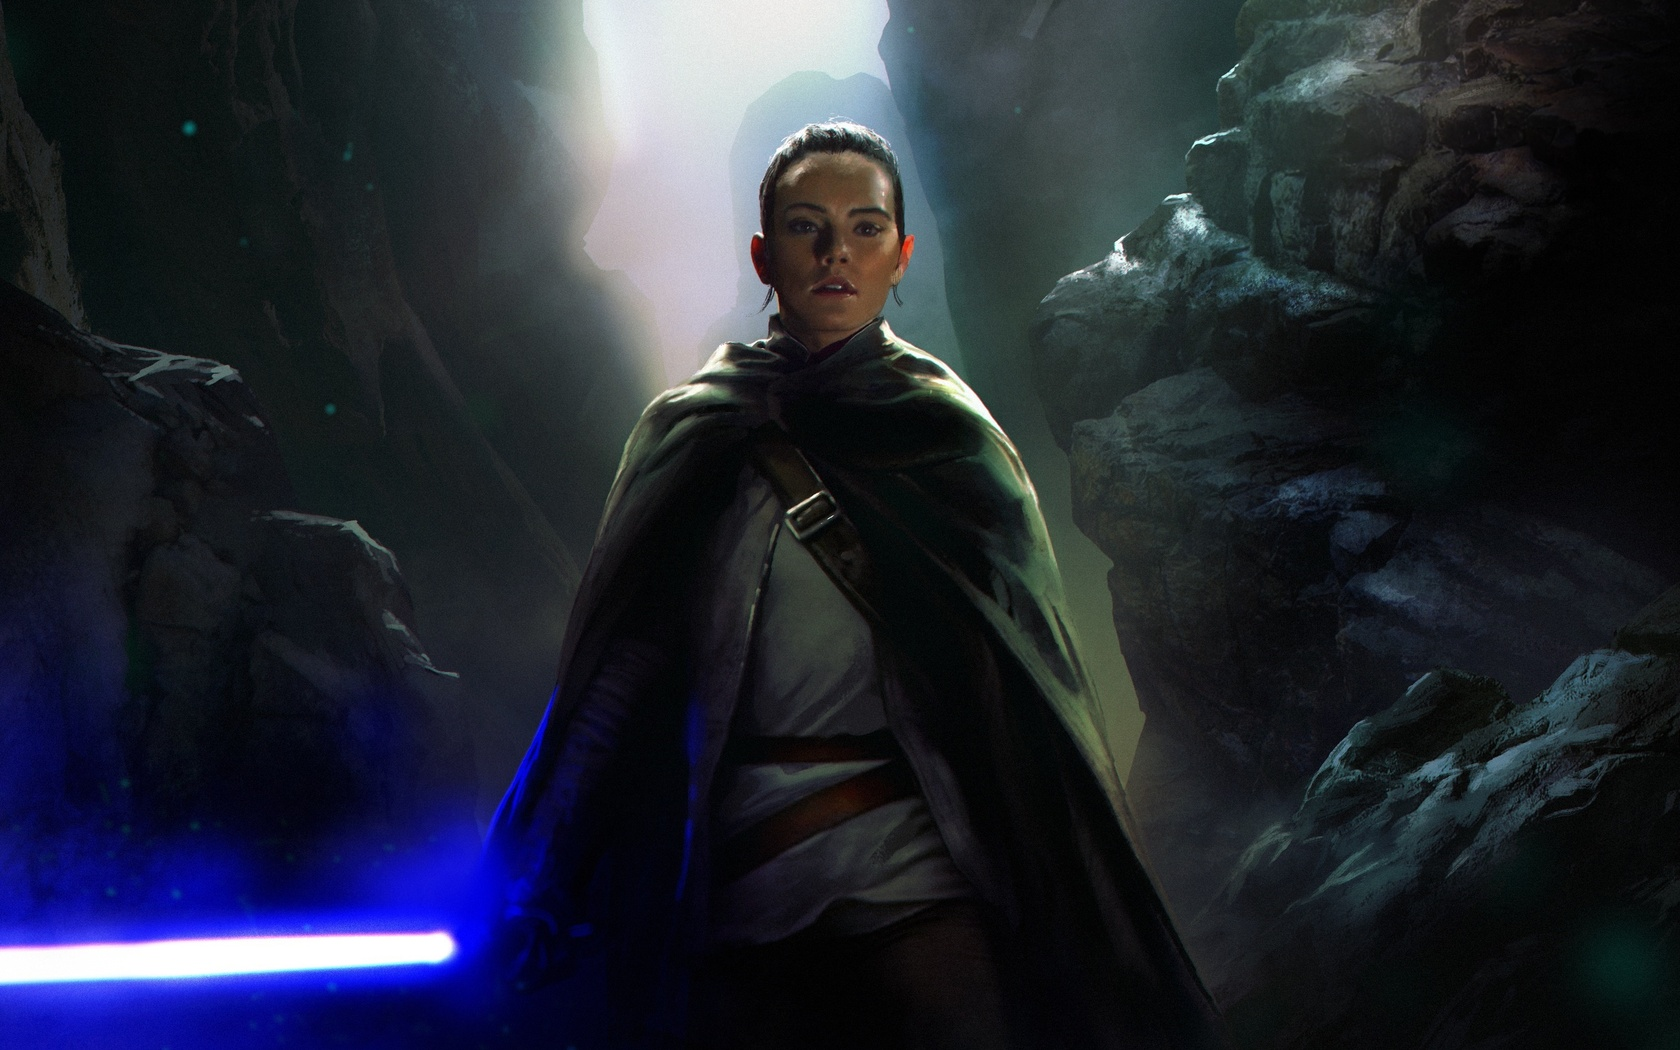 rey-star-wars-artwork-4k-fk.jpg